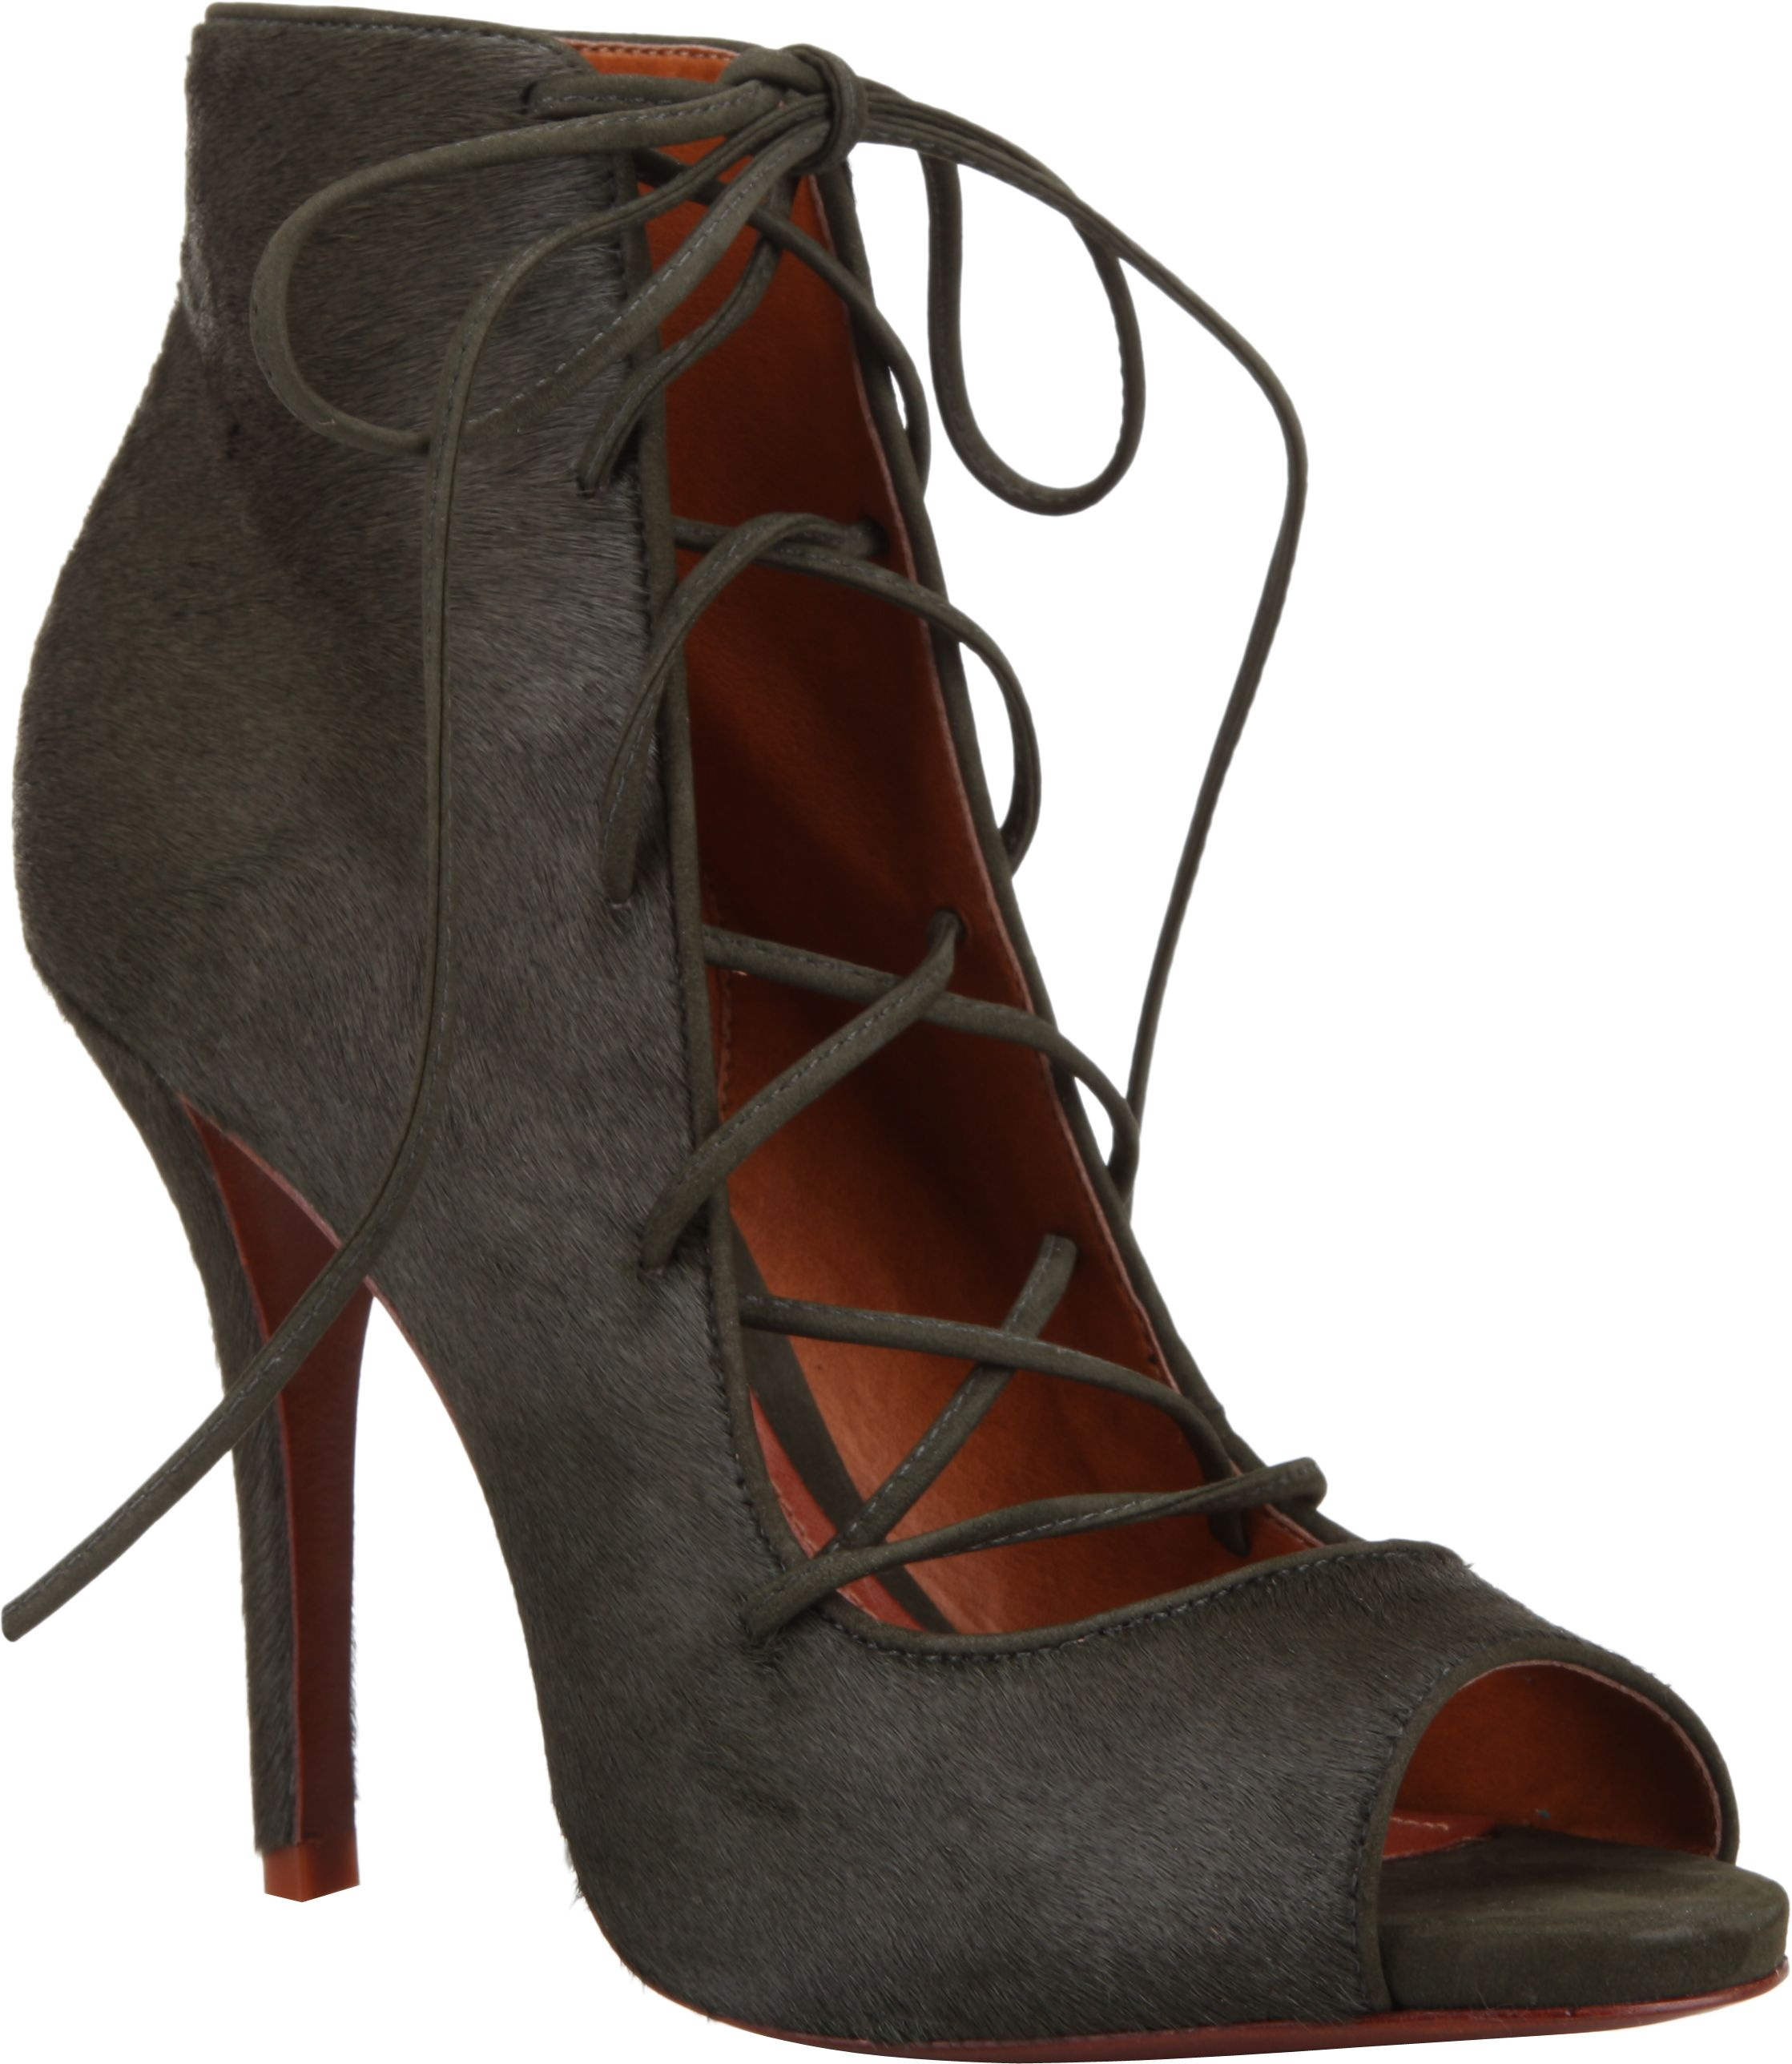 Military green, pony hair lace up booties and the endless wardrobe options